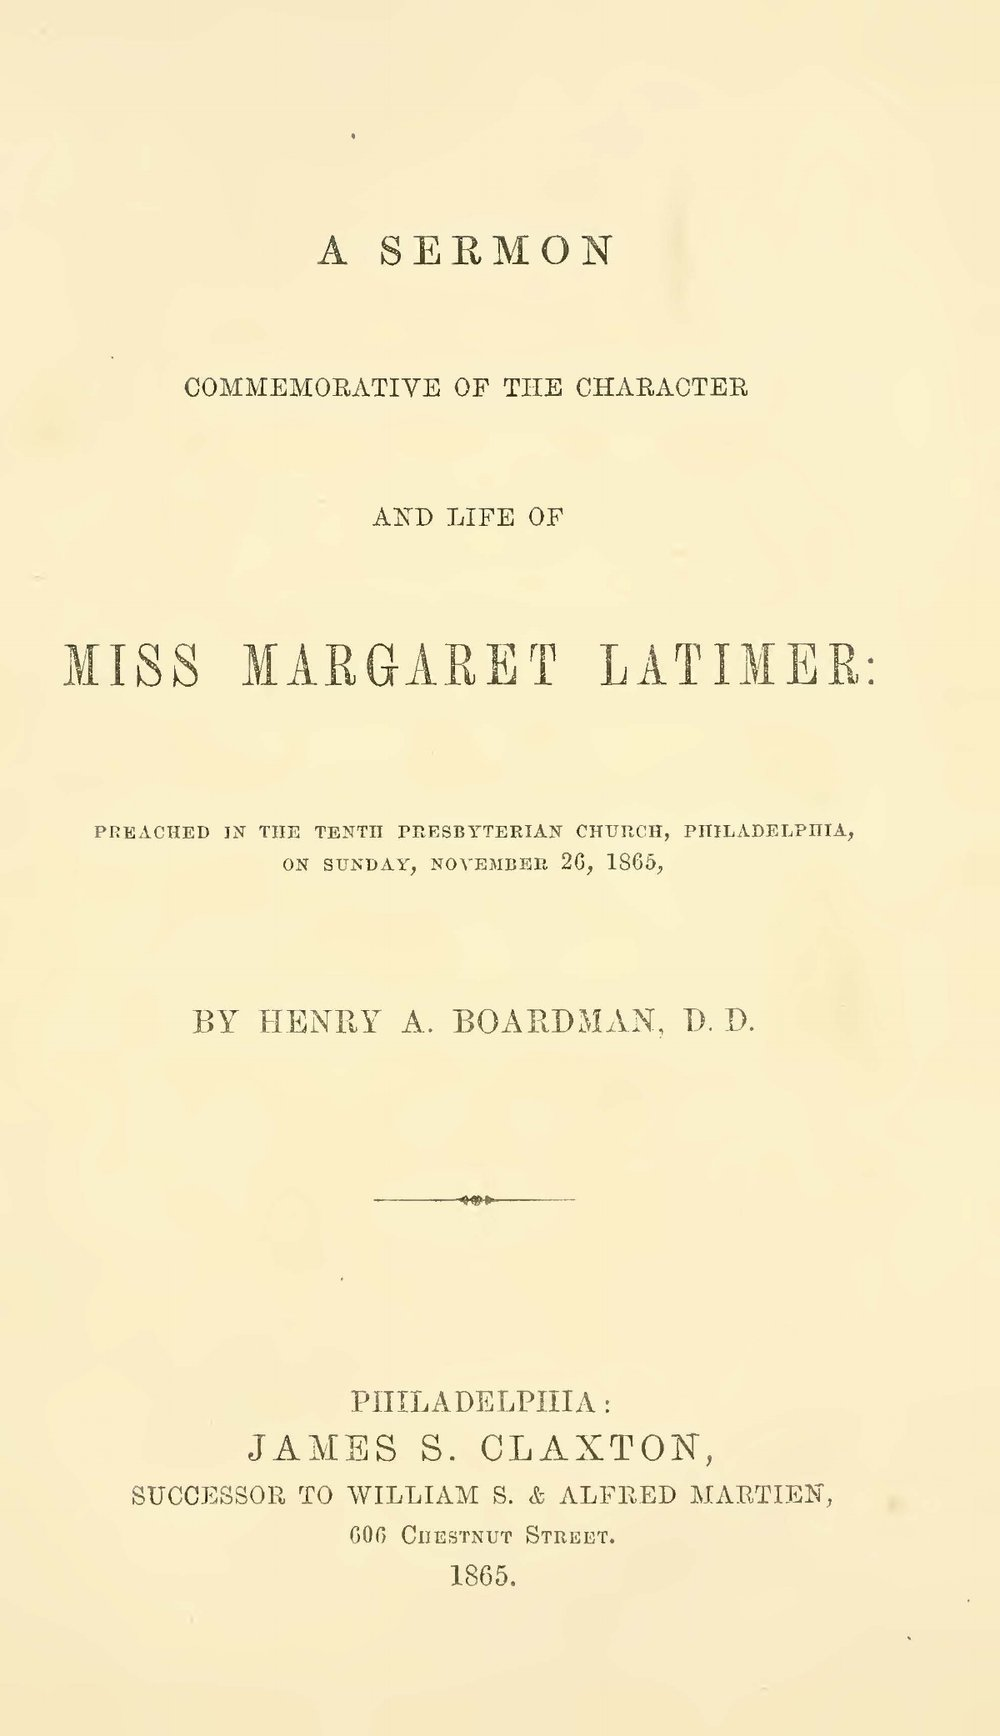 Boardman, Henry Augustus, A Sermon Commemorative of the Character and Life of Miss Margaret Latimer Title Page.jpg